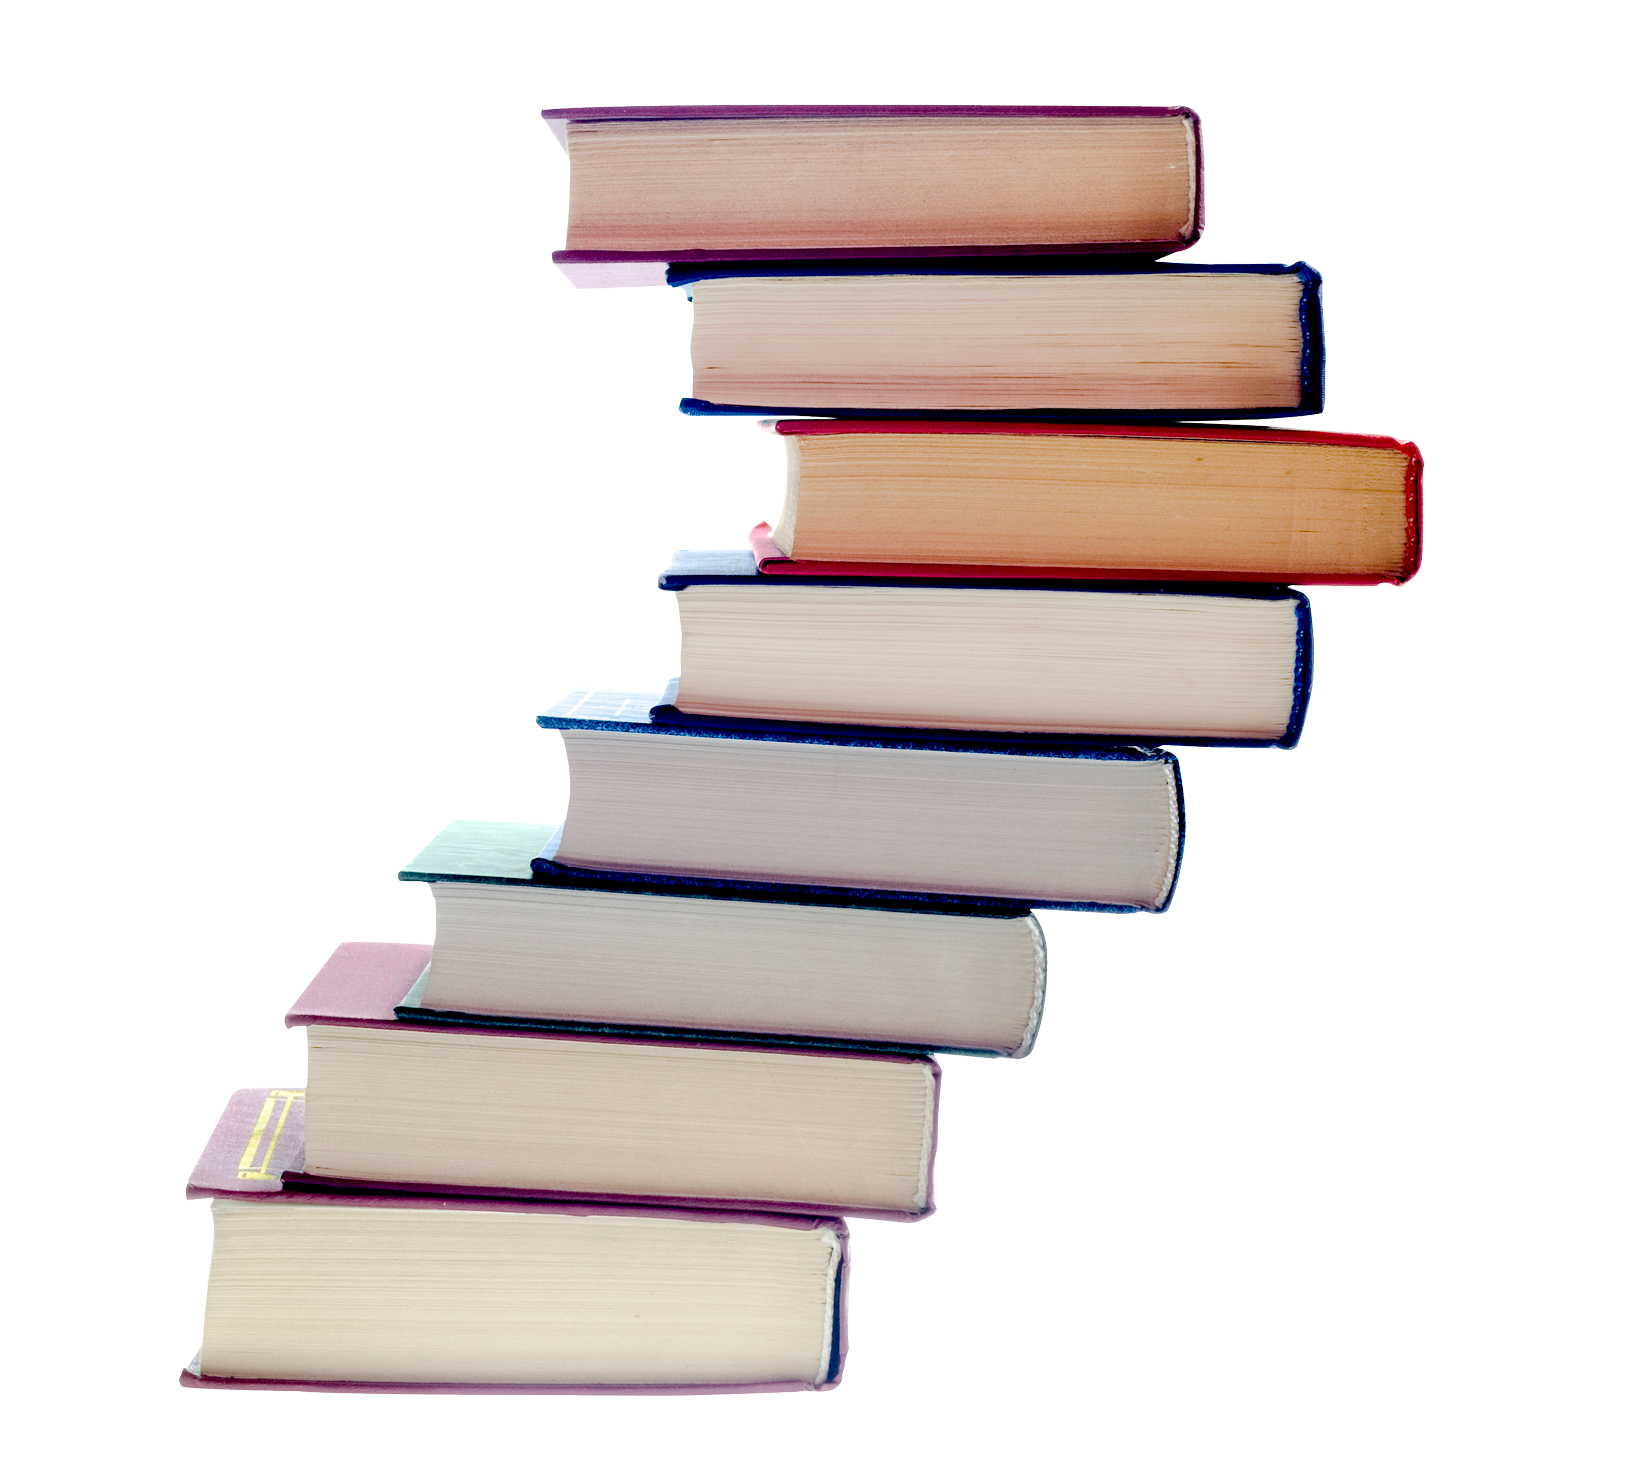 Books png. Stack of image transparent